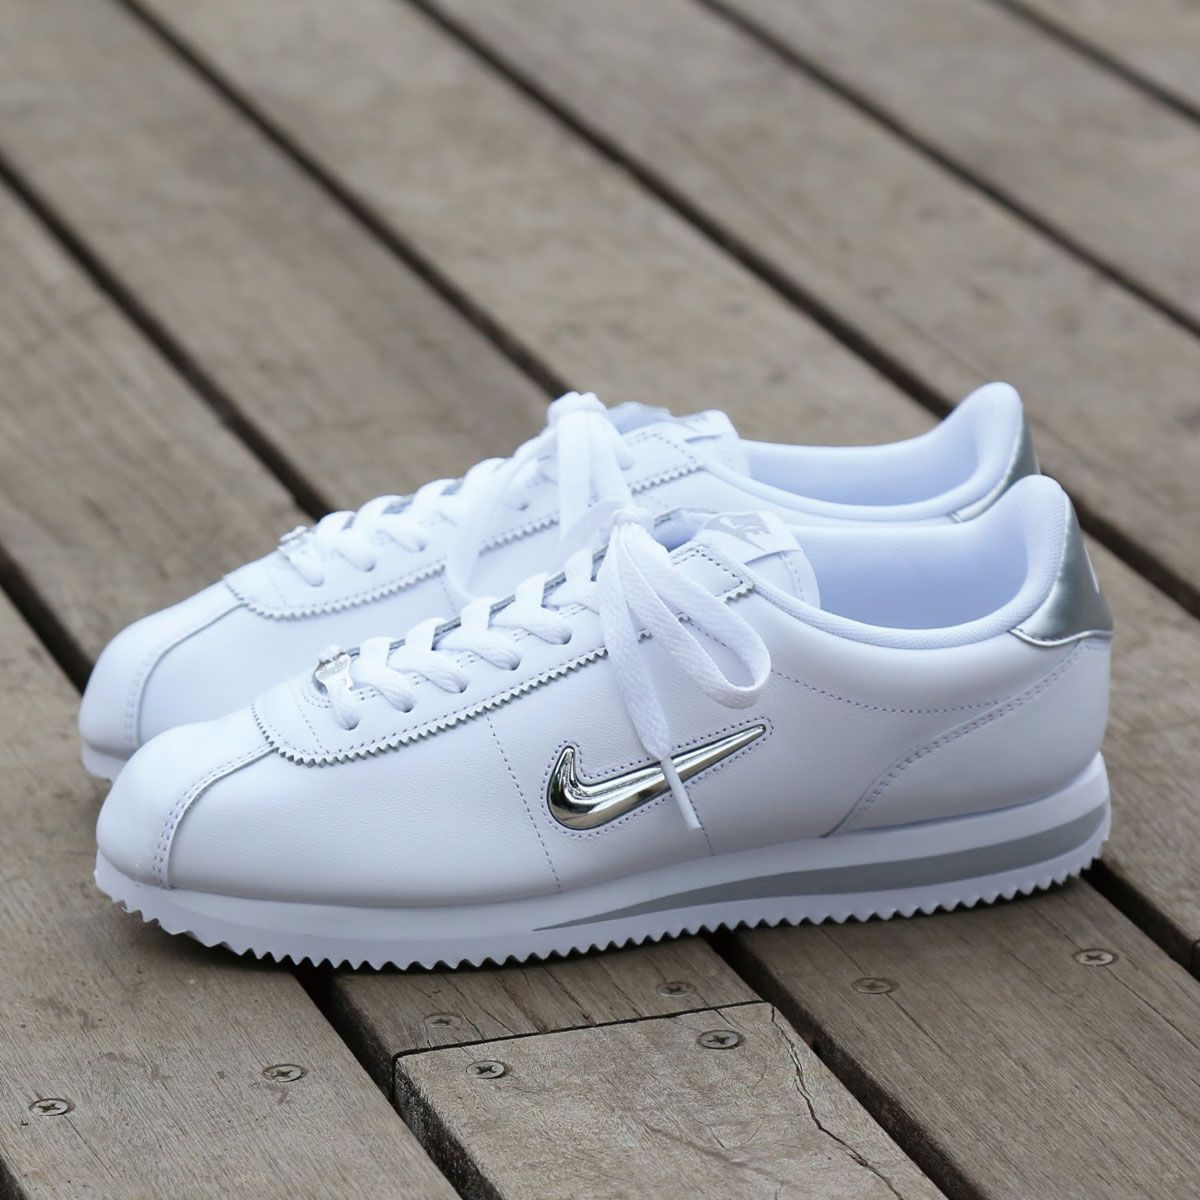 Pin by ΕΛΕΝΗ ΜΠΛΕ on shoe | White nike shoes, Urban shoes